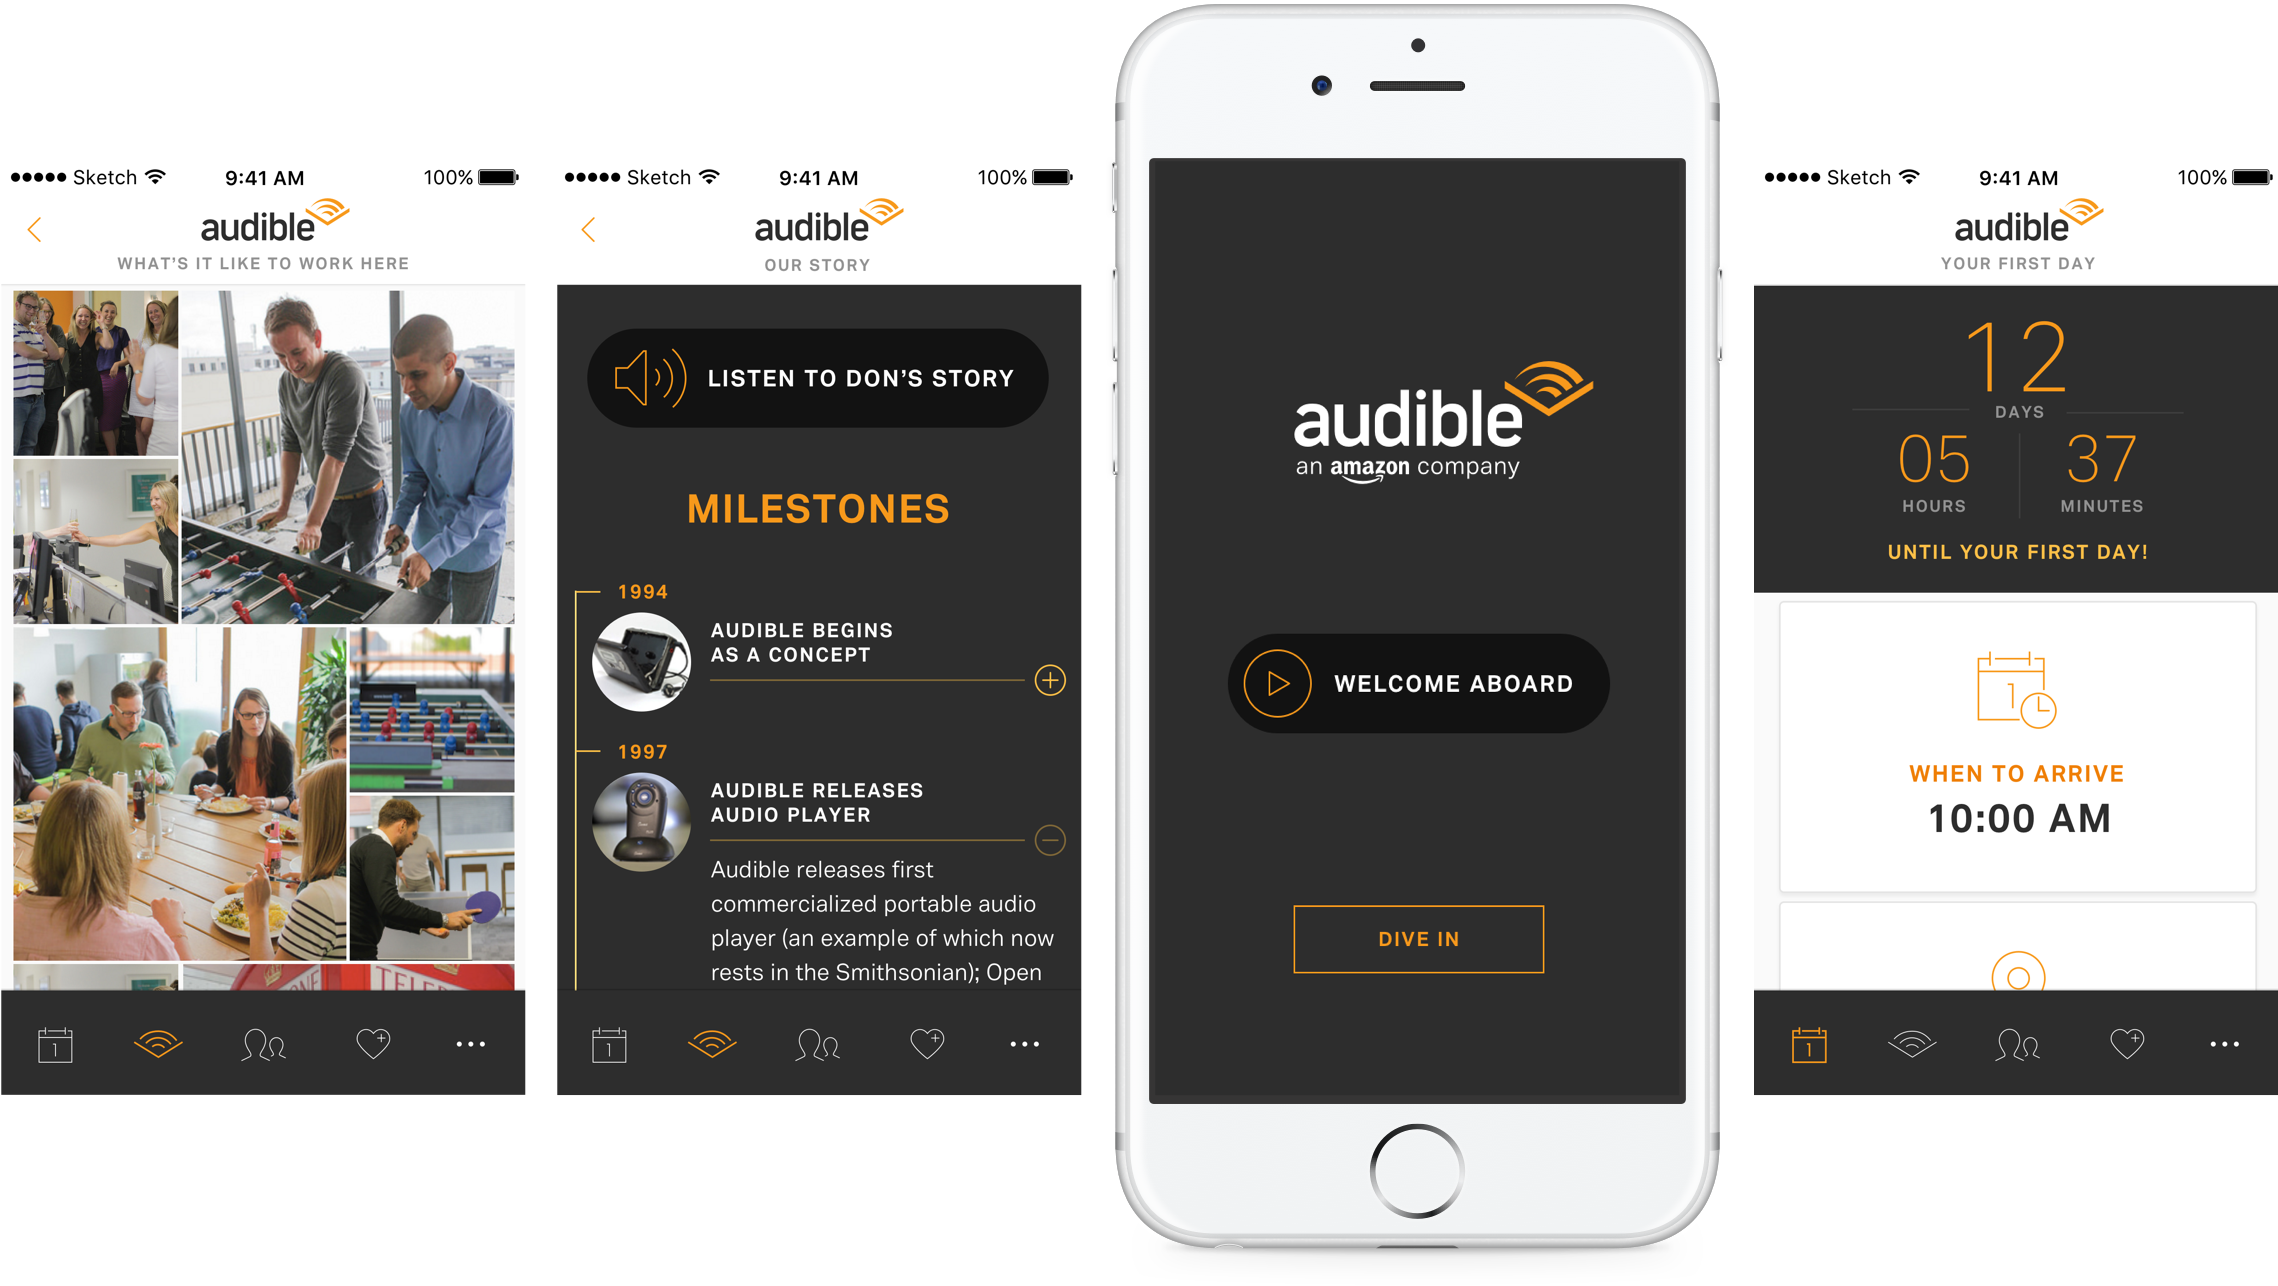 audible-onboarding-app-happyfuncorp